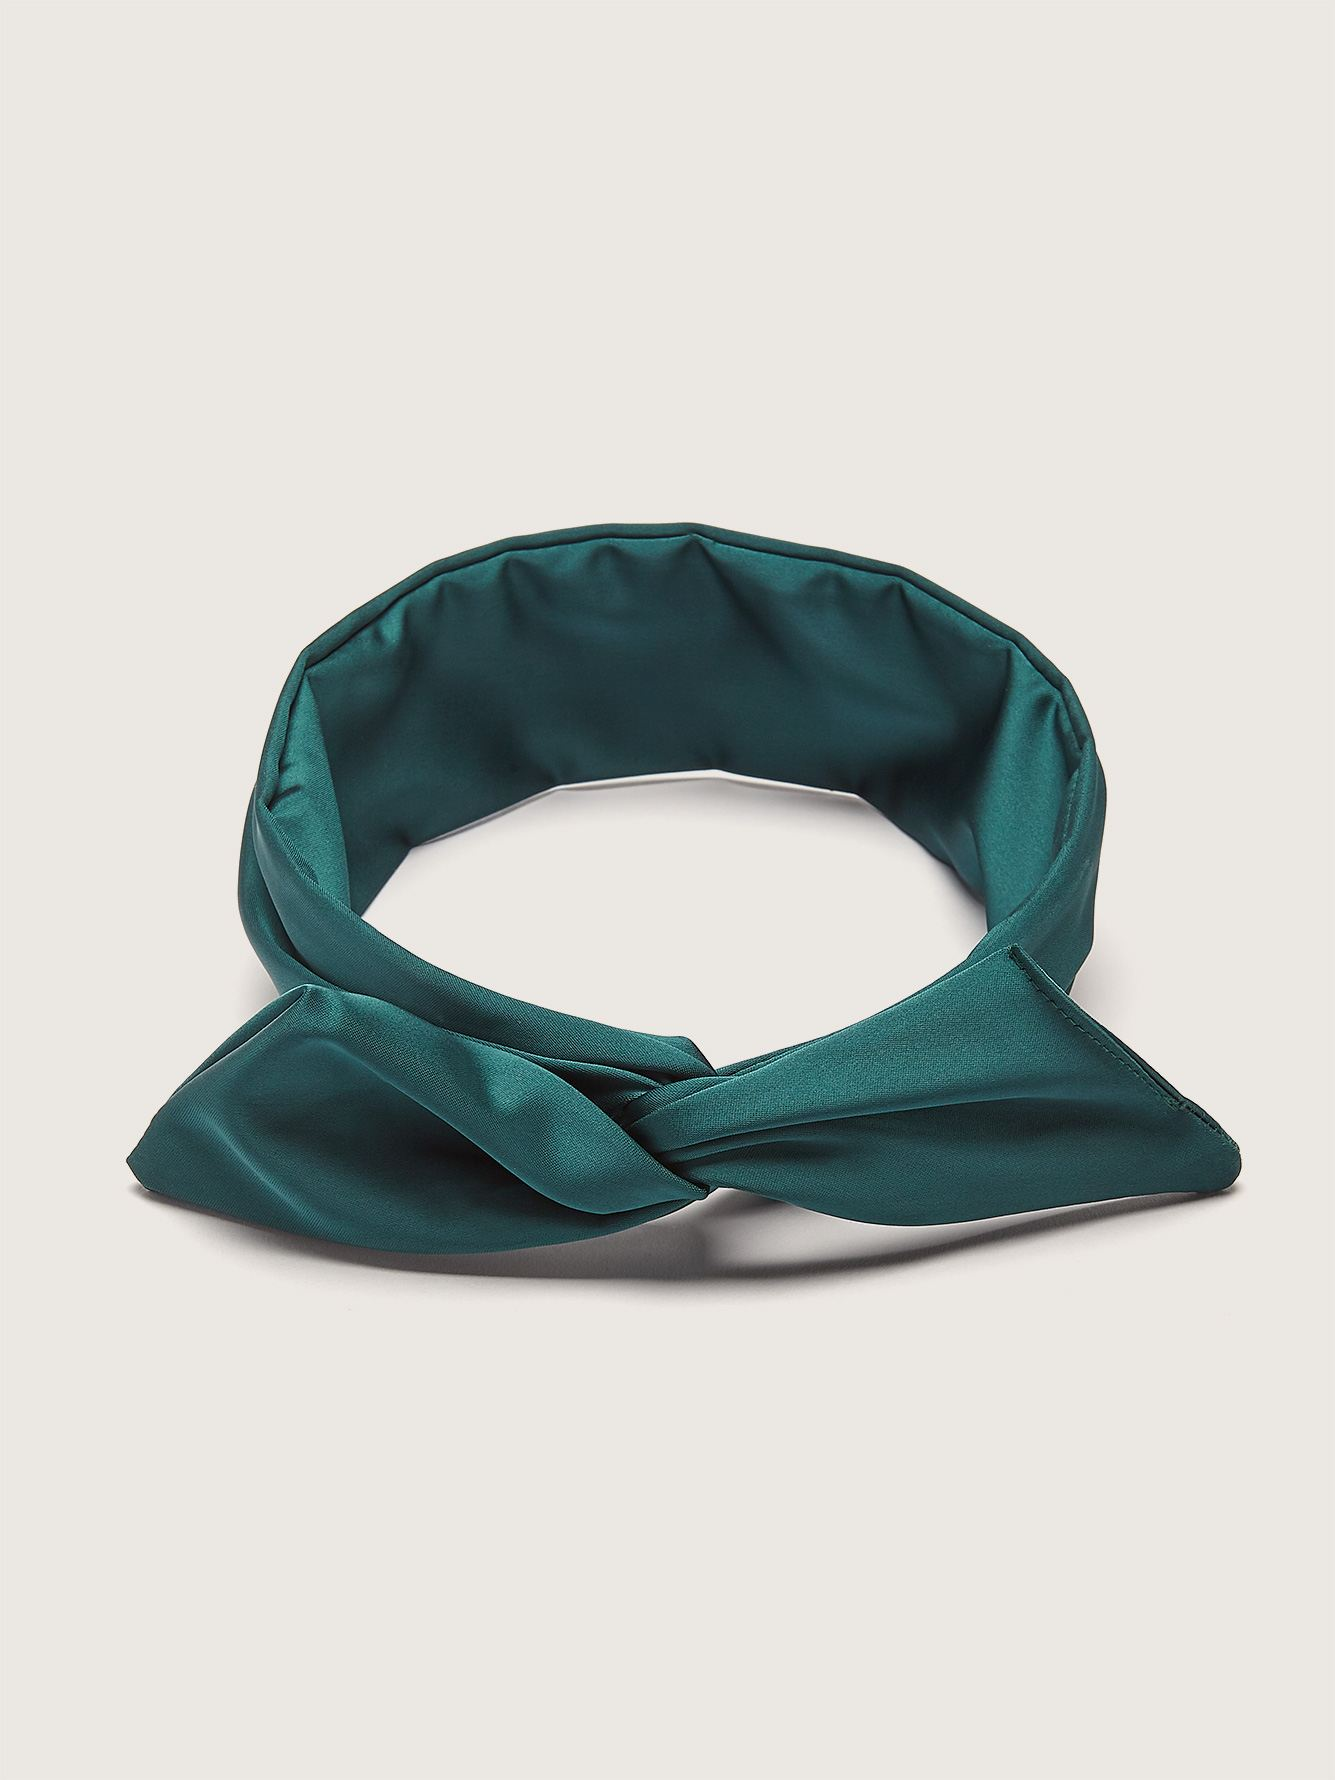 Twisted Satin Headband with Integrated Metal Rod - Gibou